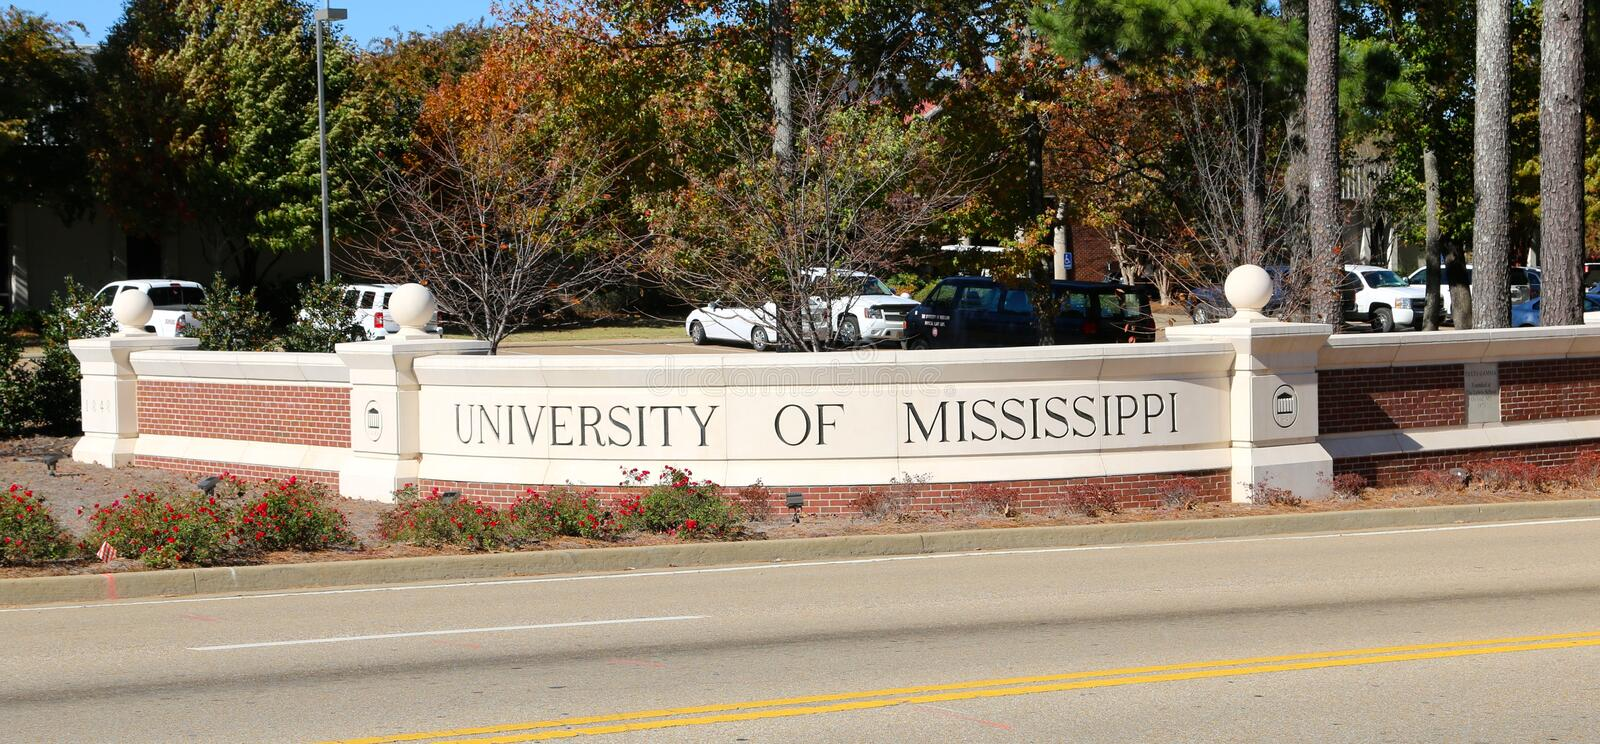 Sign at the entrance of the University of Mississippi royalty free stock photography